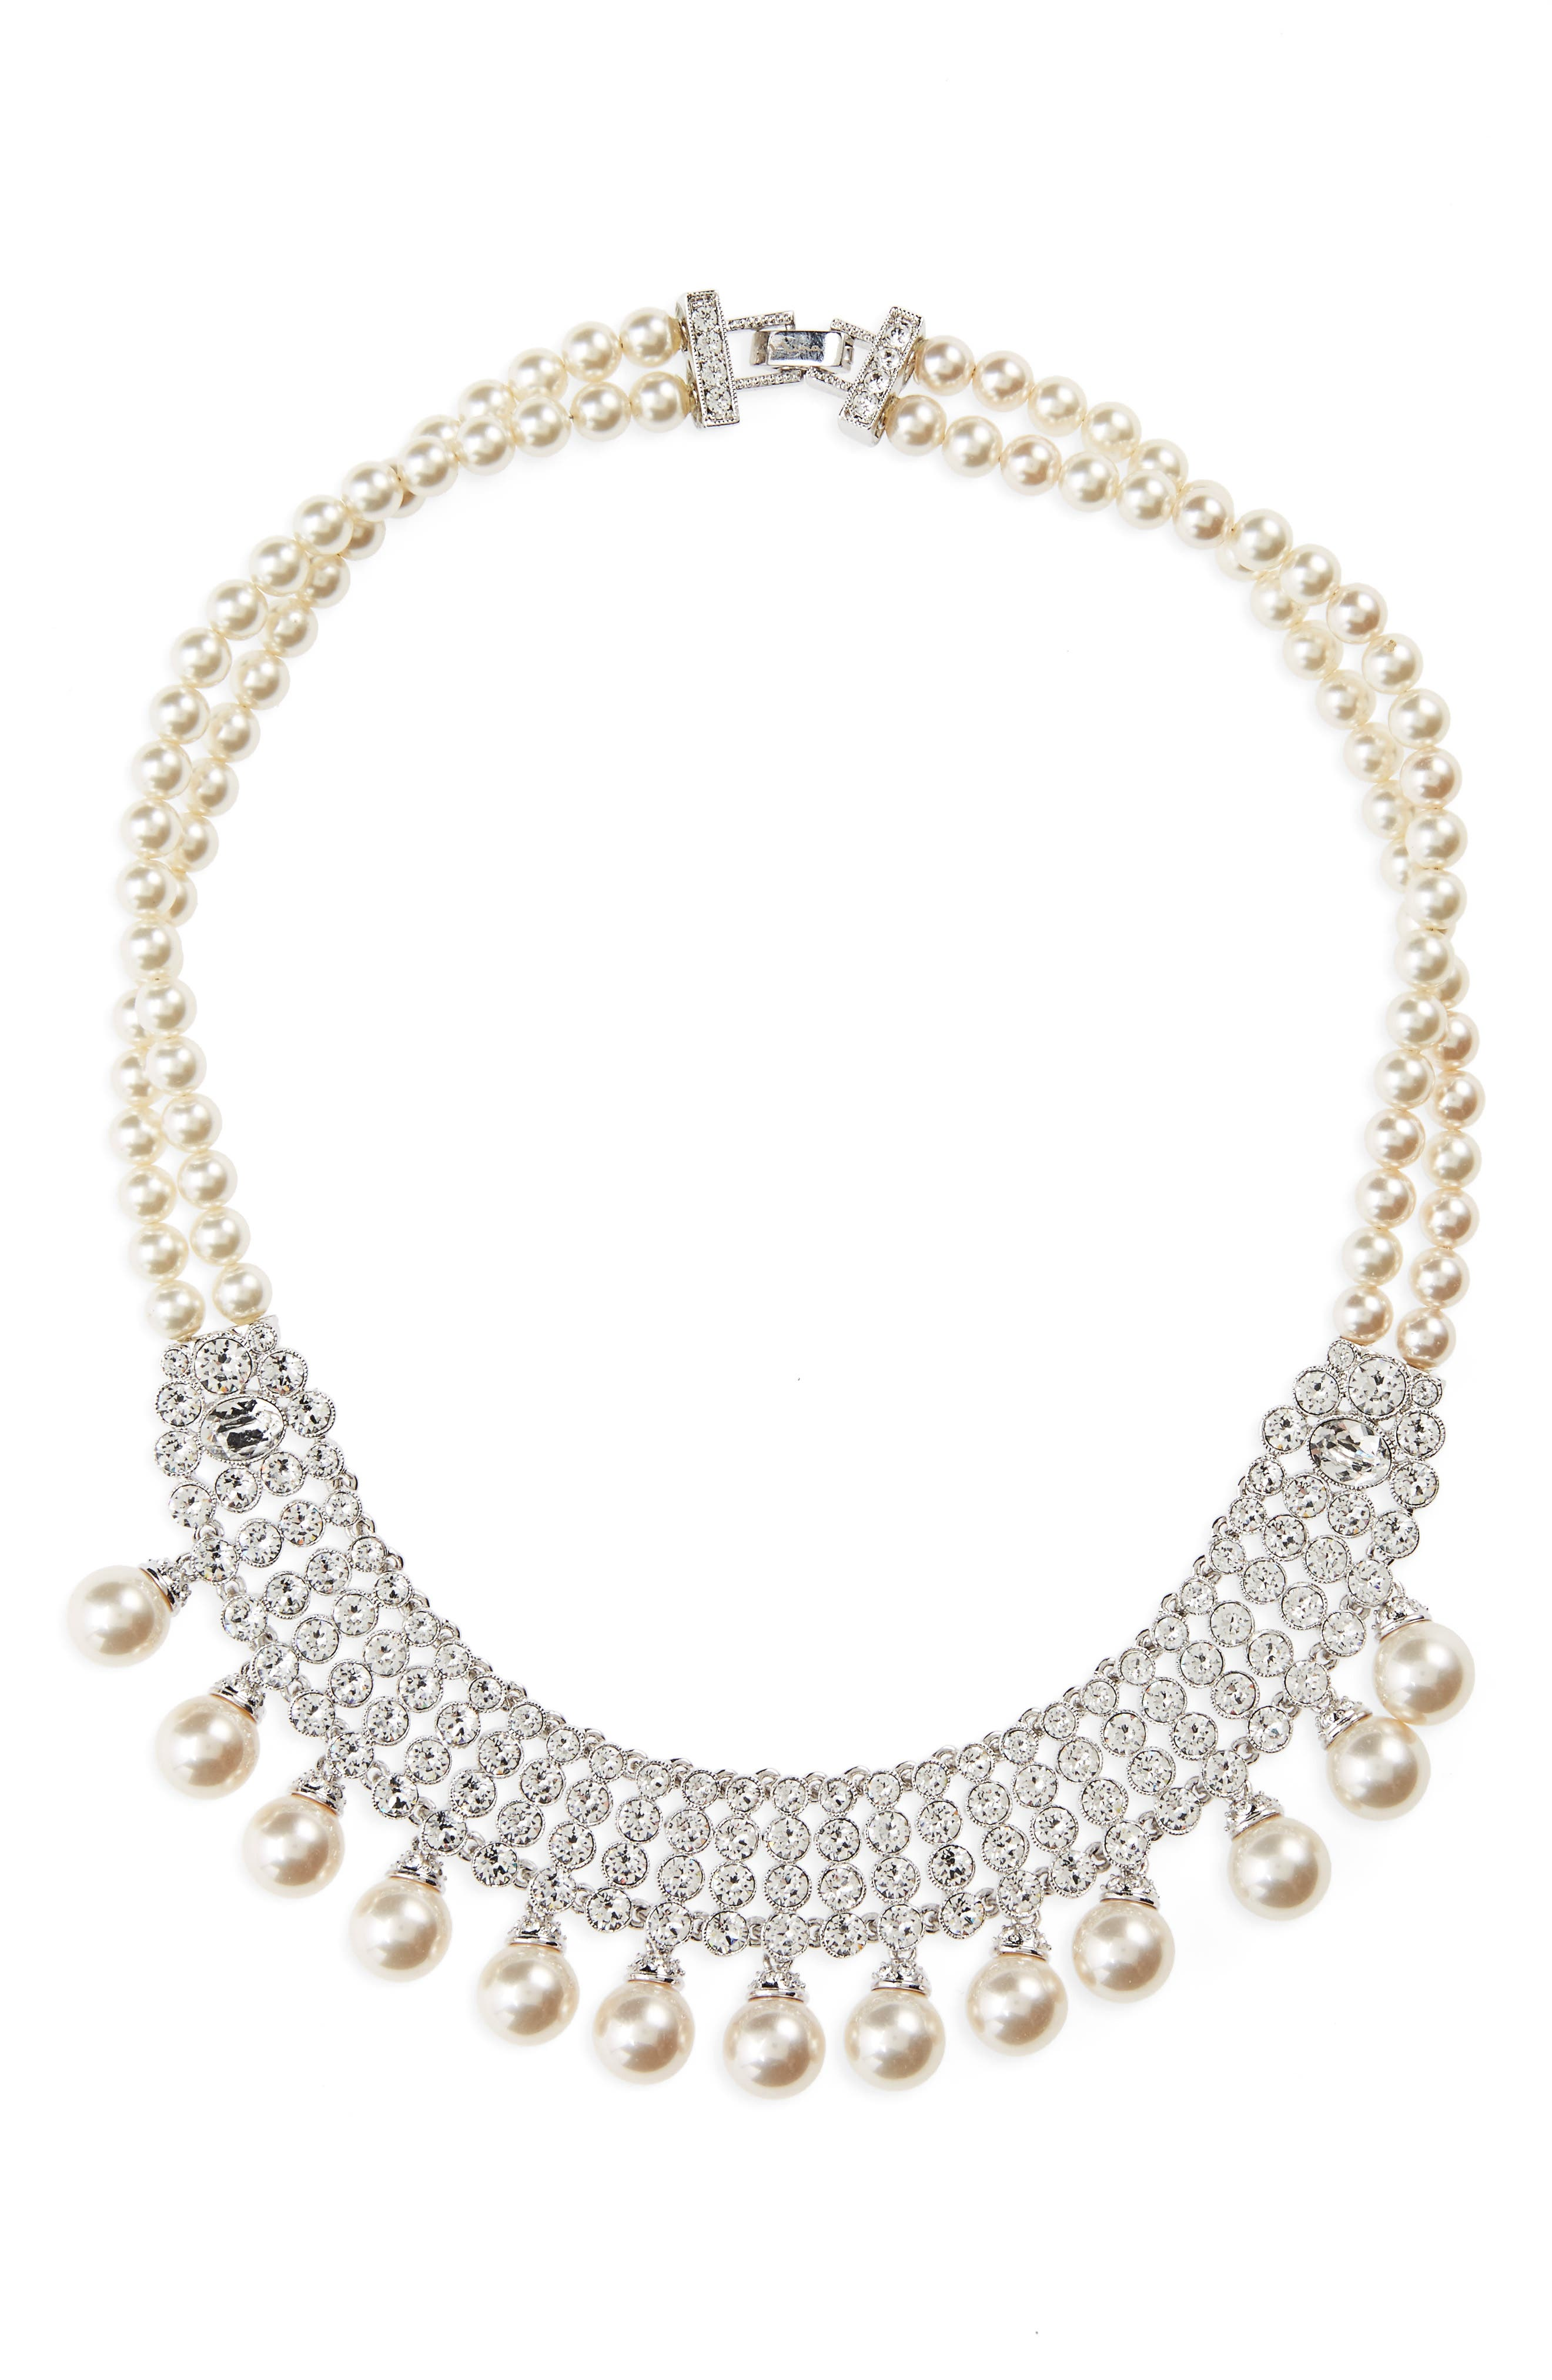 Glam Imitation Pearl Fringe Necklace,                         Main,                         color, Ivory Pearl / Silver